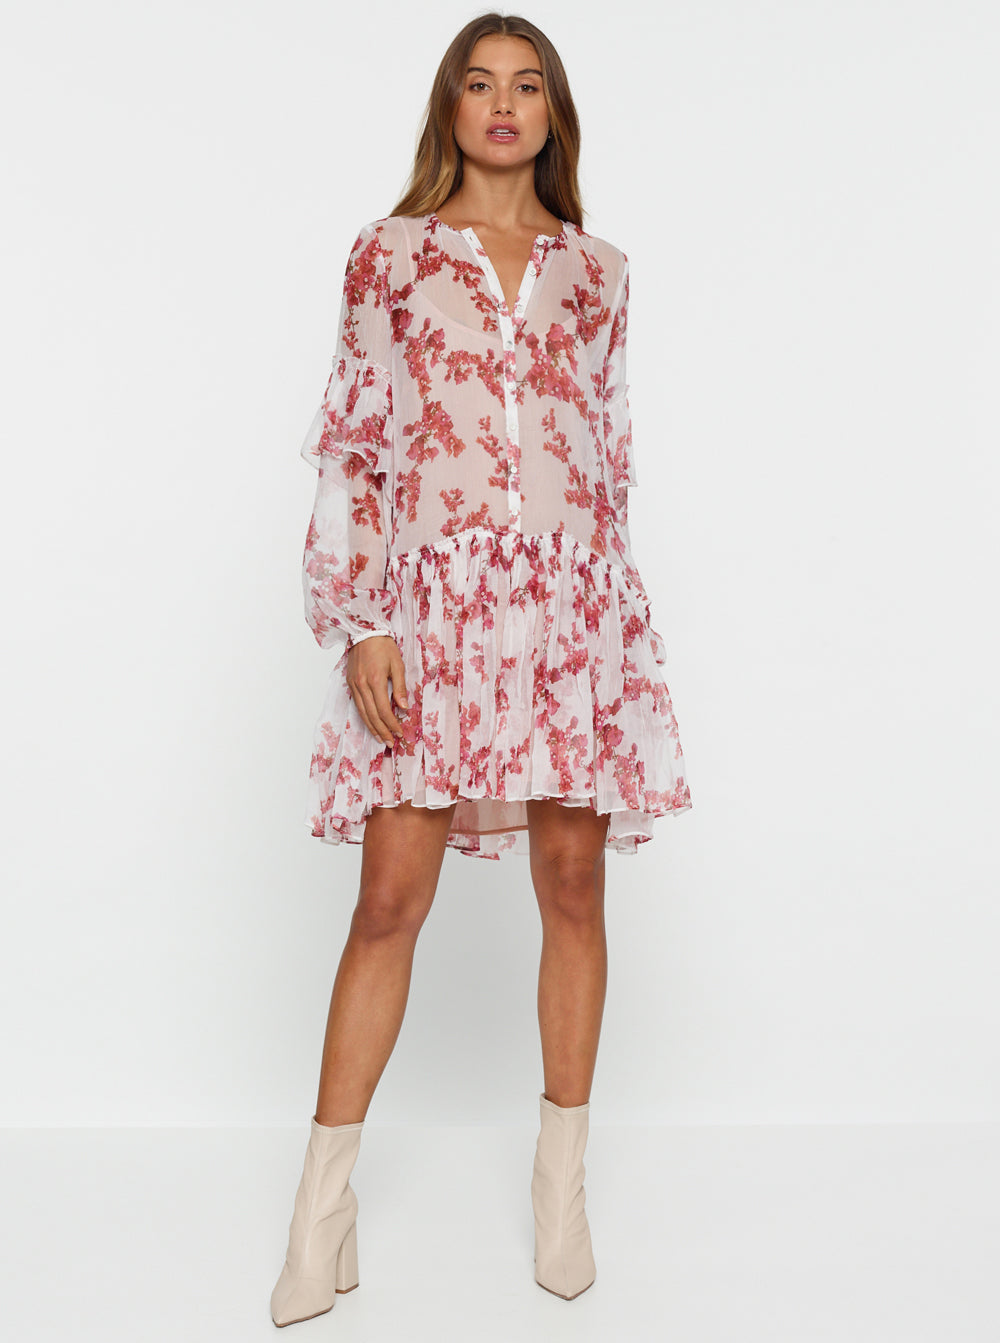 These Dreams Silk Oversized Tunic Dress